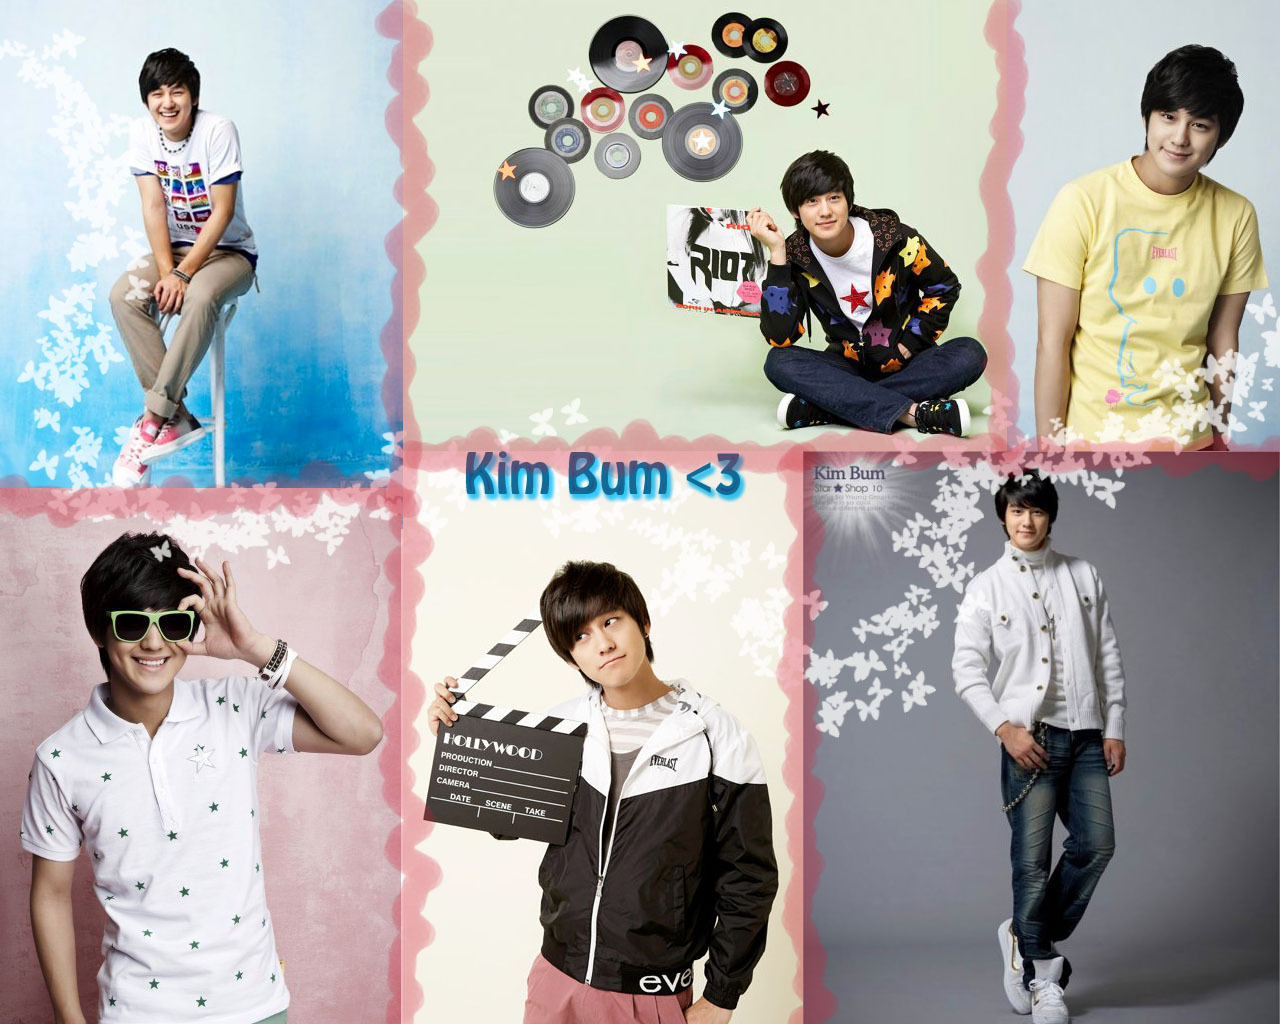 Kim Bum Boys Over Flowers